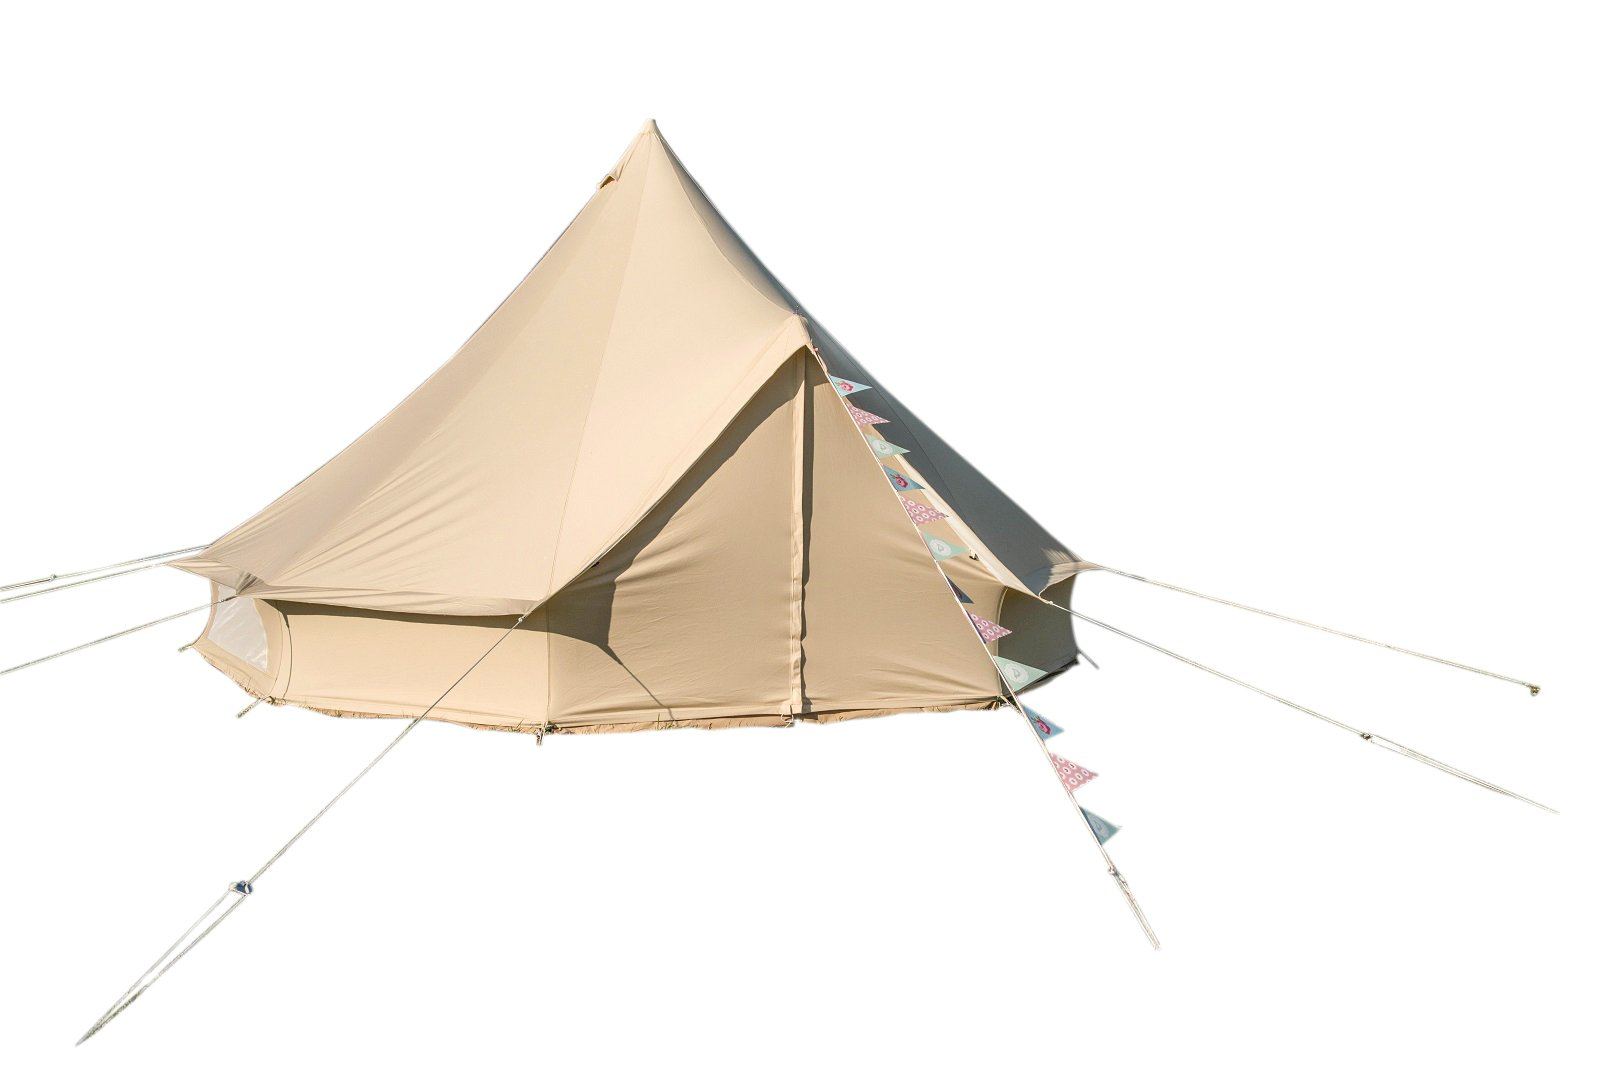 Bell Tent 5 metre with zipped in groundsheet by Bell Tent Boutique 5